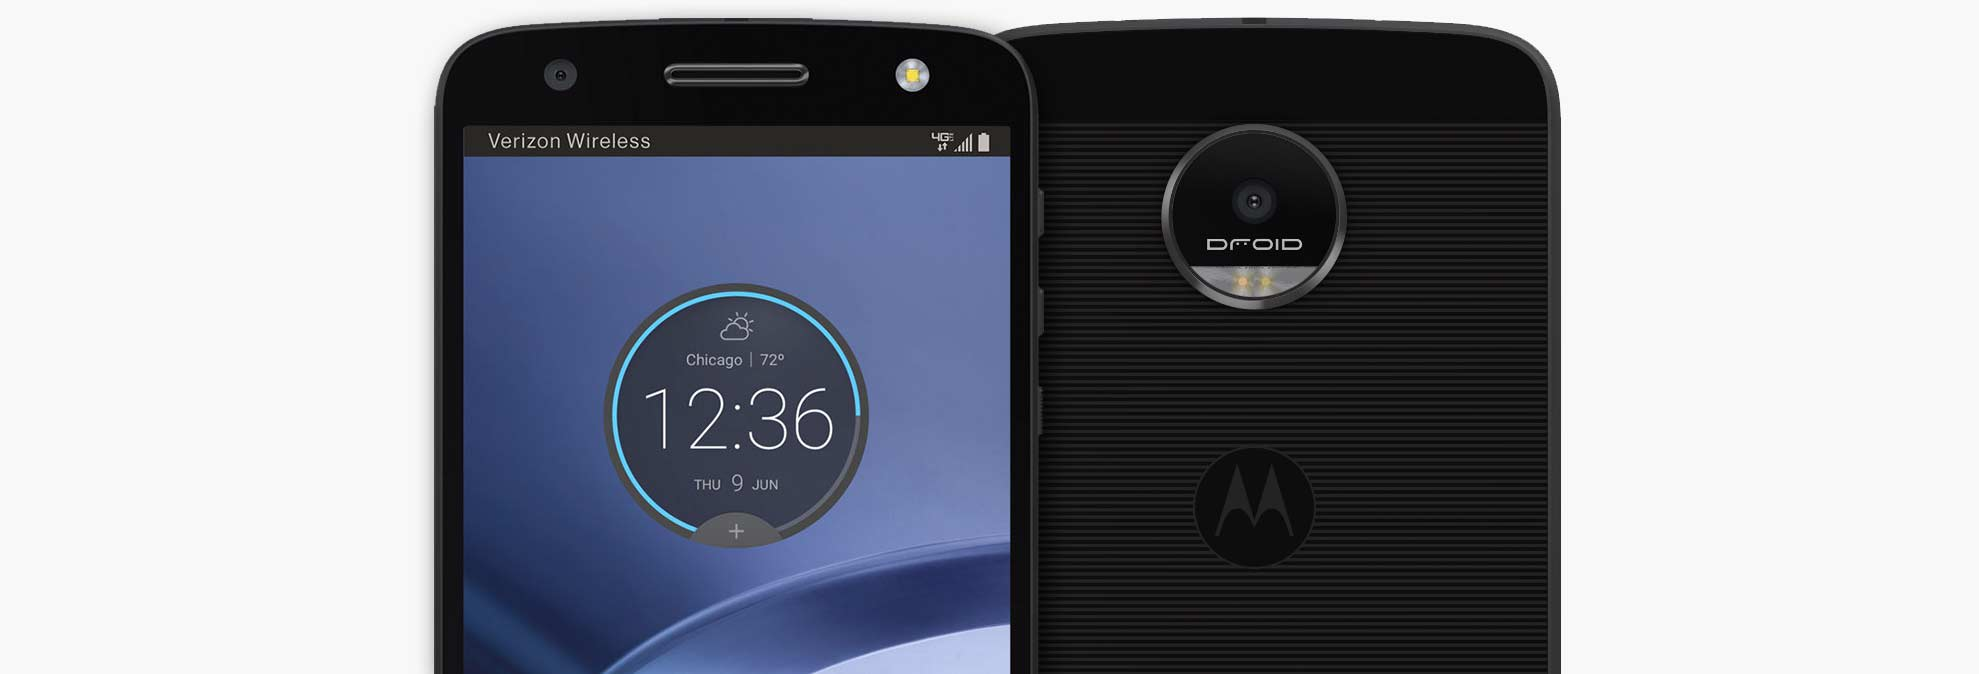 Hands on With the Moto Z Force Smartphone - Consumer Reports